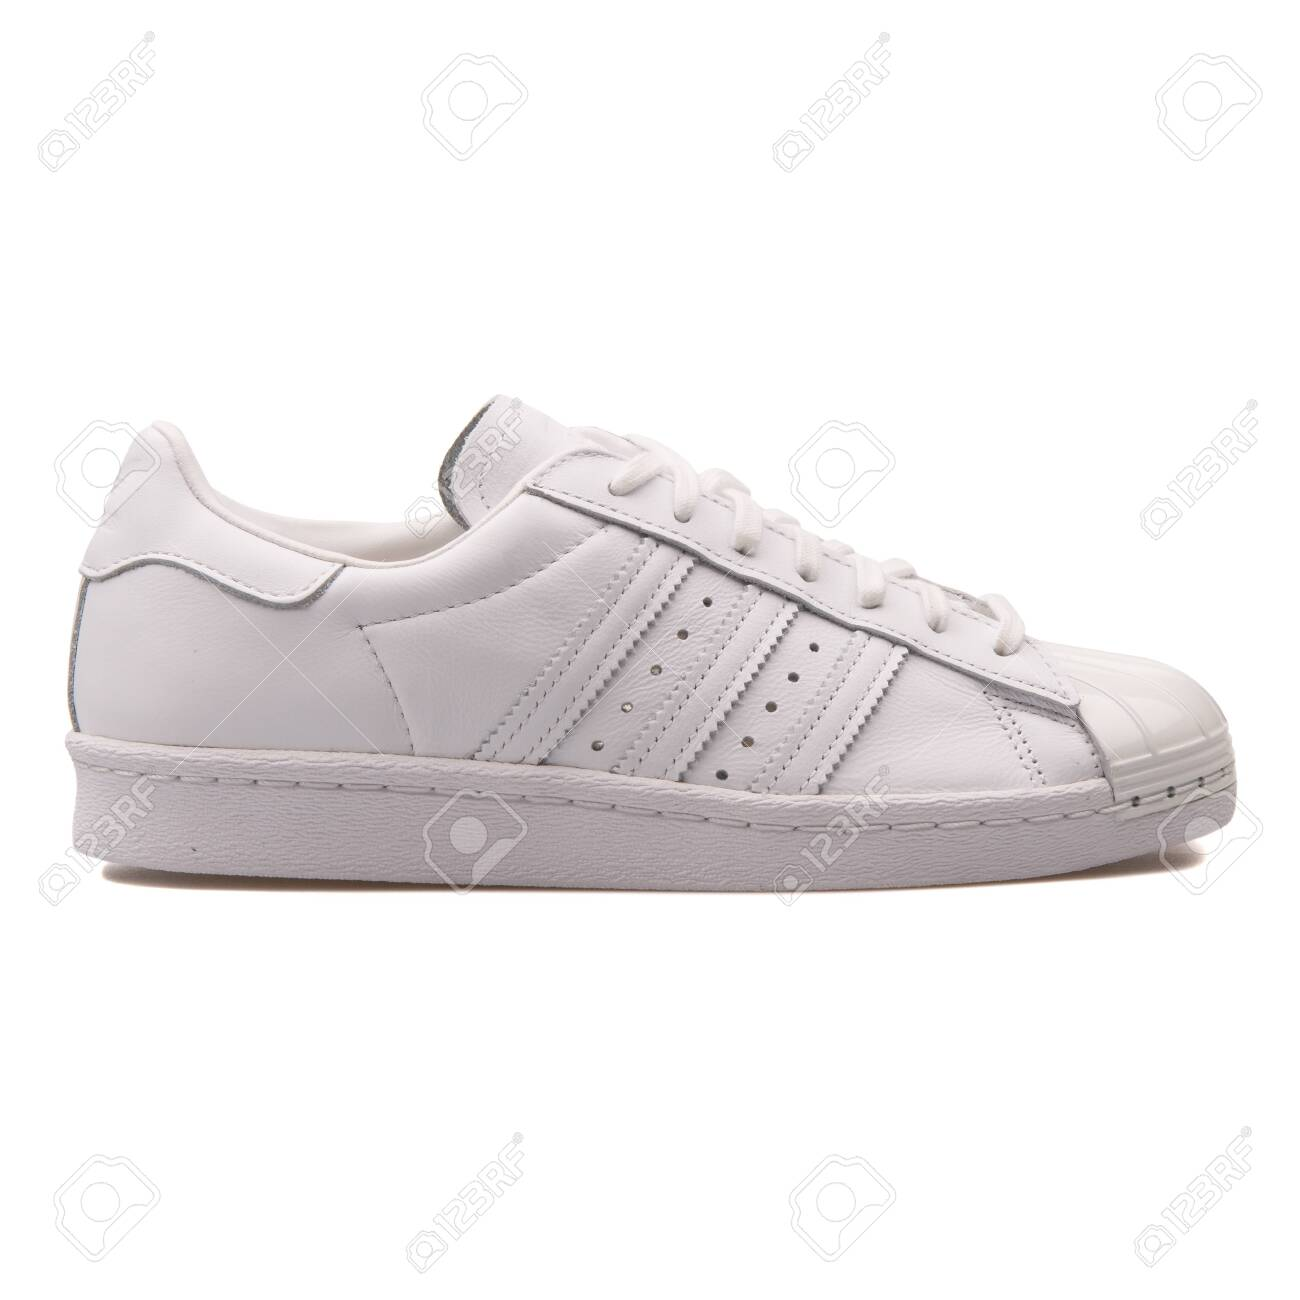 newest collection 53b9f 9cccc VIENNA, AUSTRIA - AUGUST 30, 2017: Adidas Superstar 80s Metal..